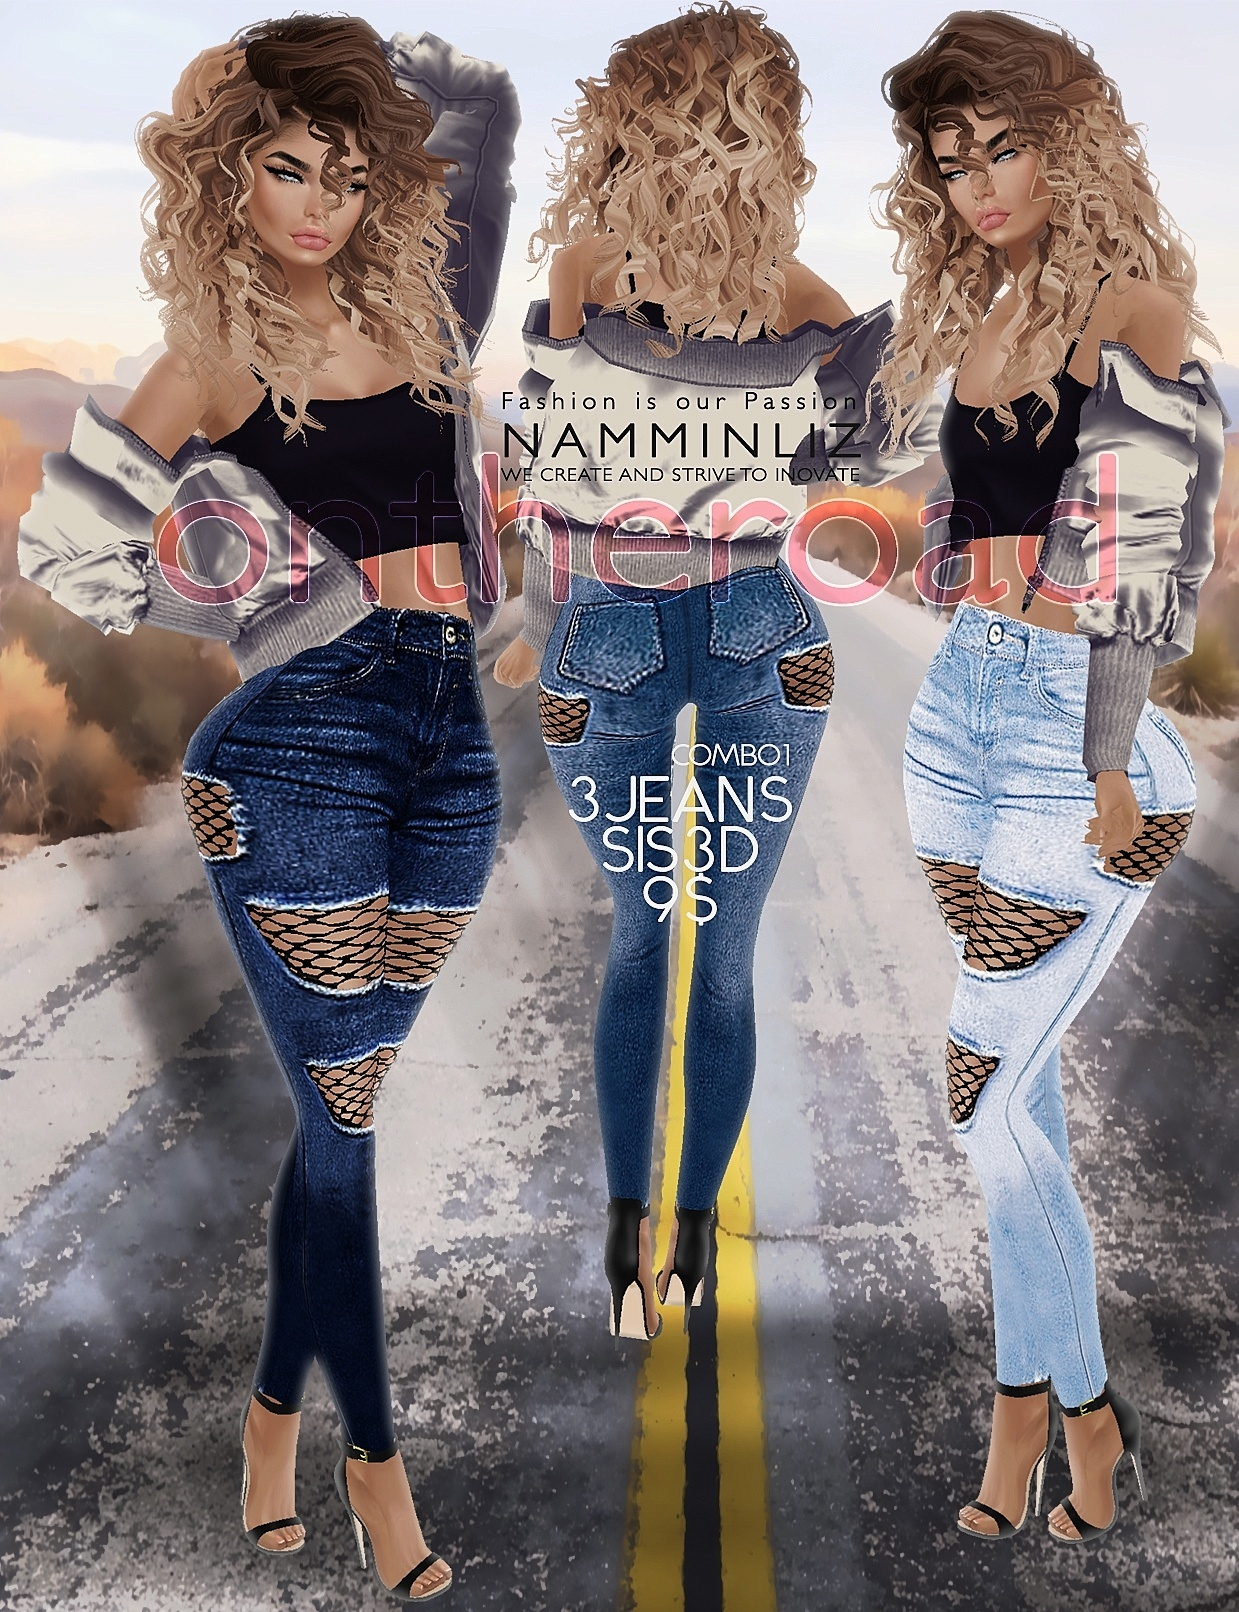 ontheroad combo1 / 3Jeans Sis3d PNG RLL RLLS RL